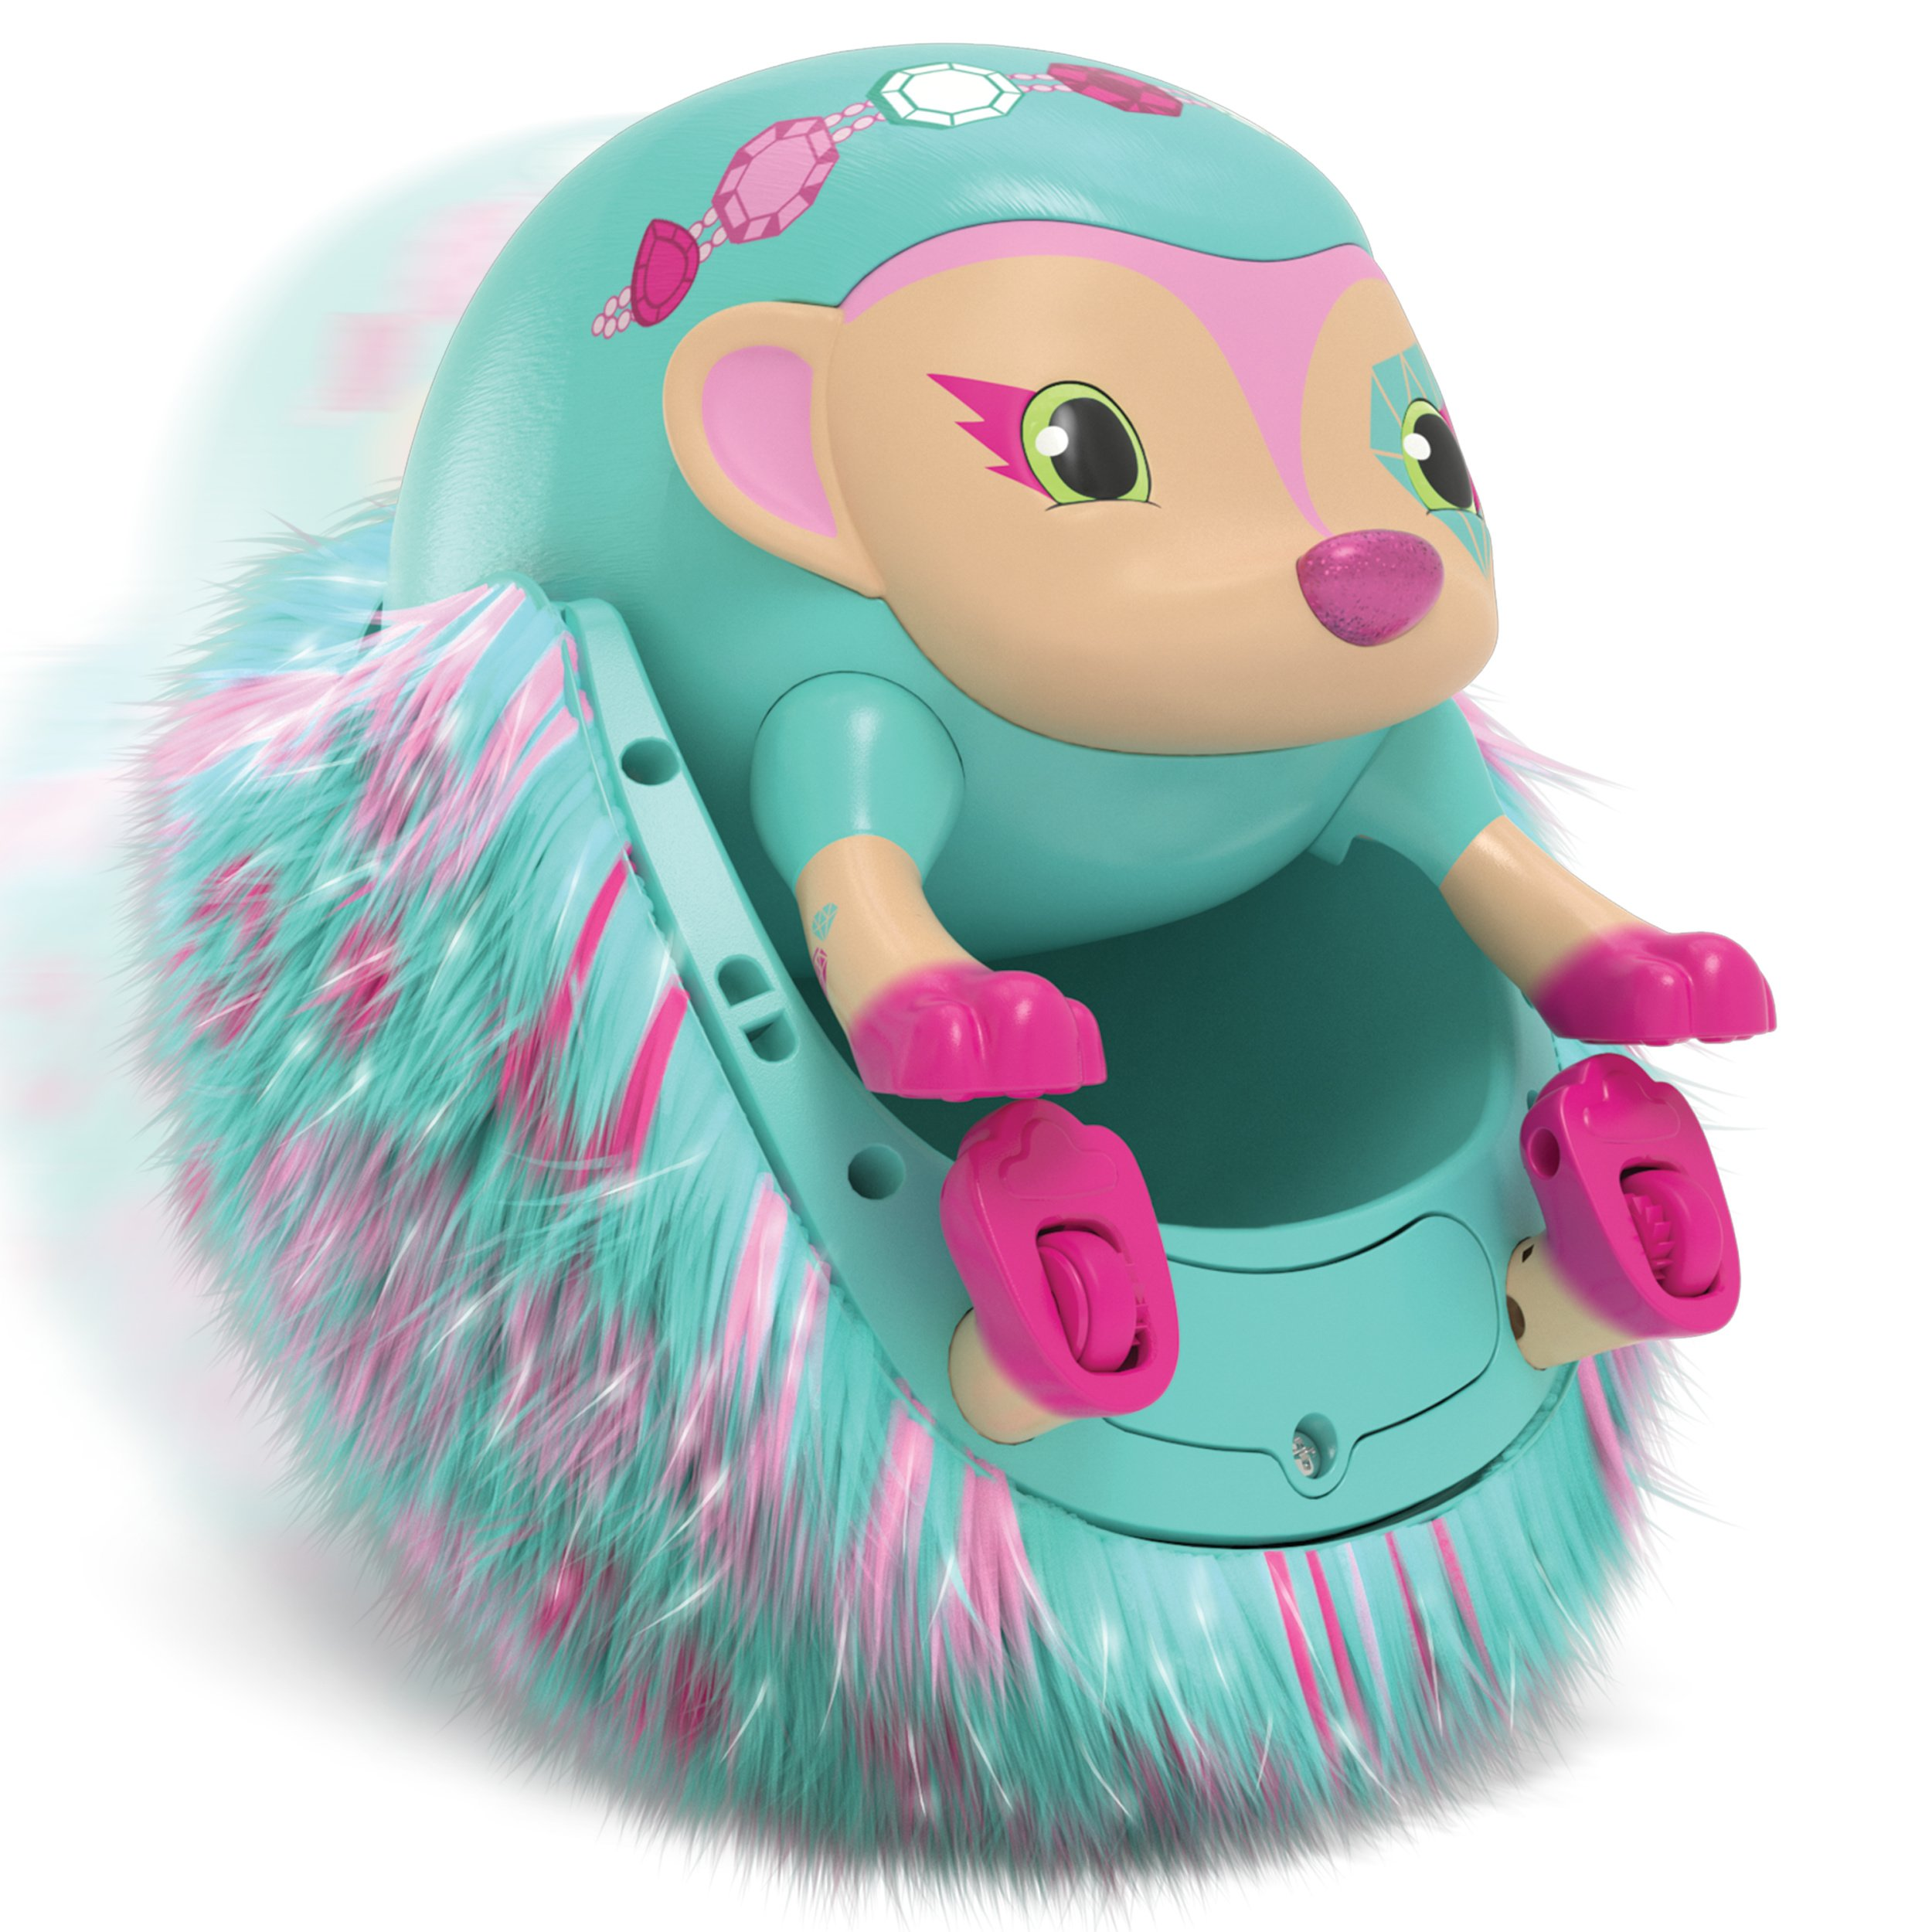 Zoomer Hedgiez Interactive Hedgehog with Lights, Sounds and Sensors, by Spin Master by Zoomer (Image #7)